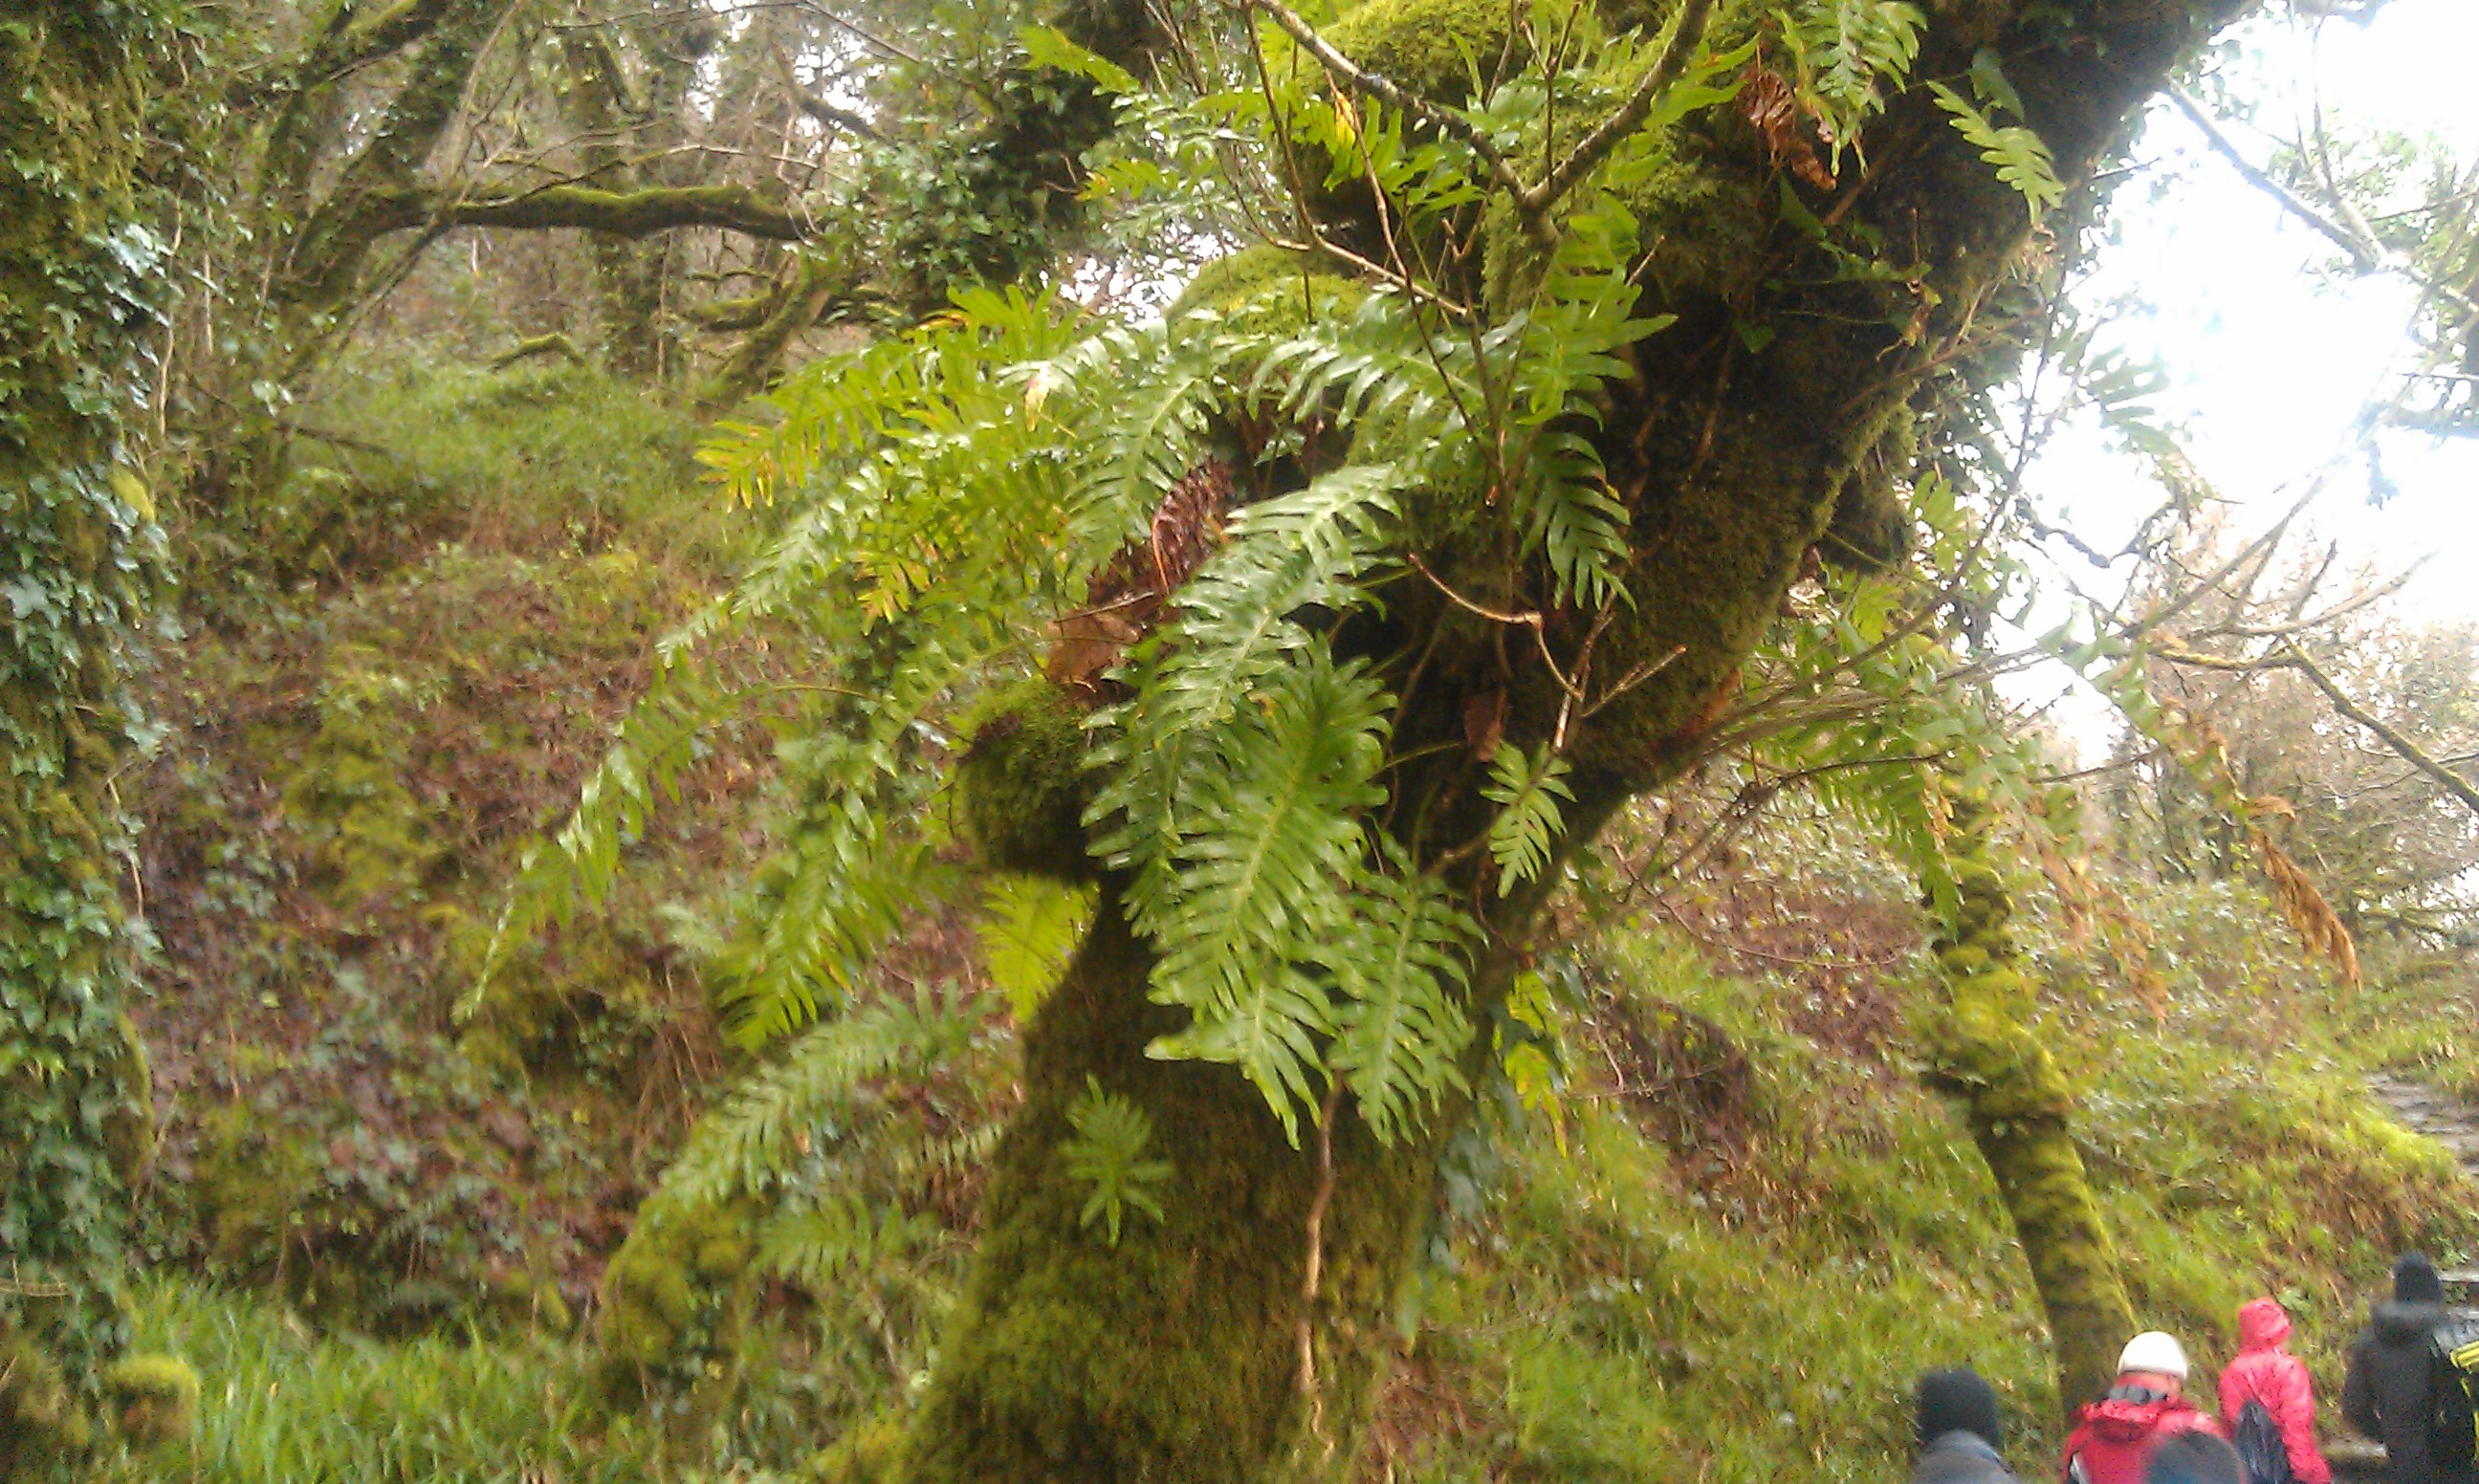 Lush canopy of fern in Knockomagh forest